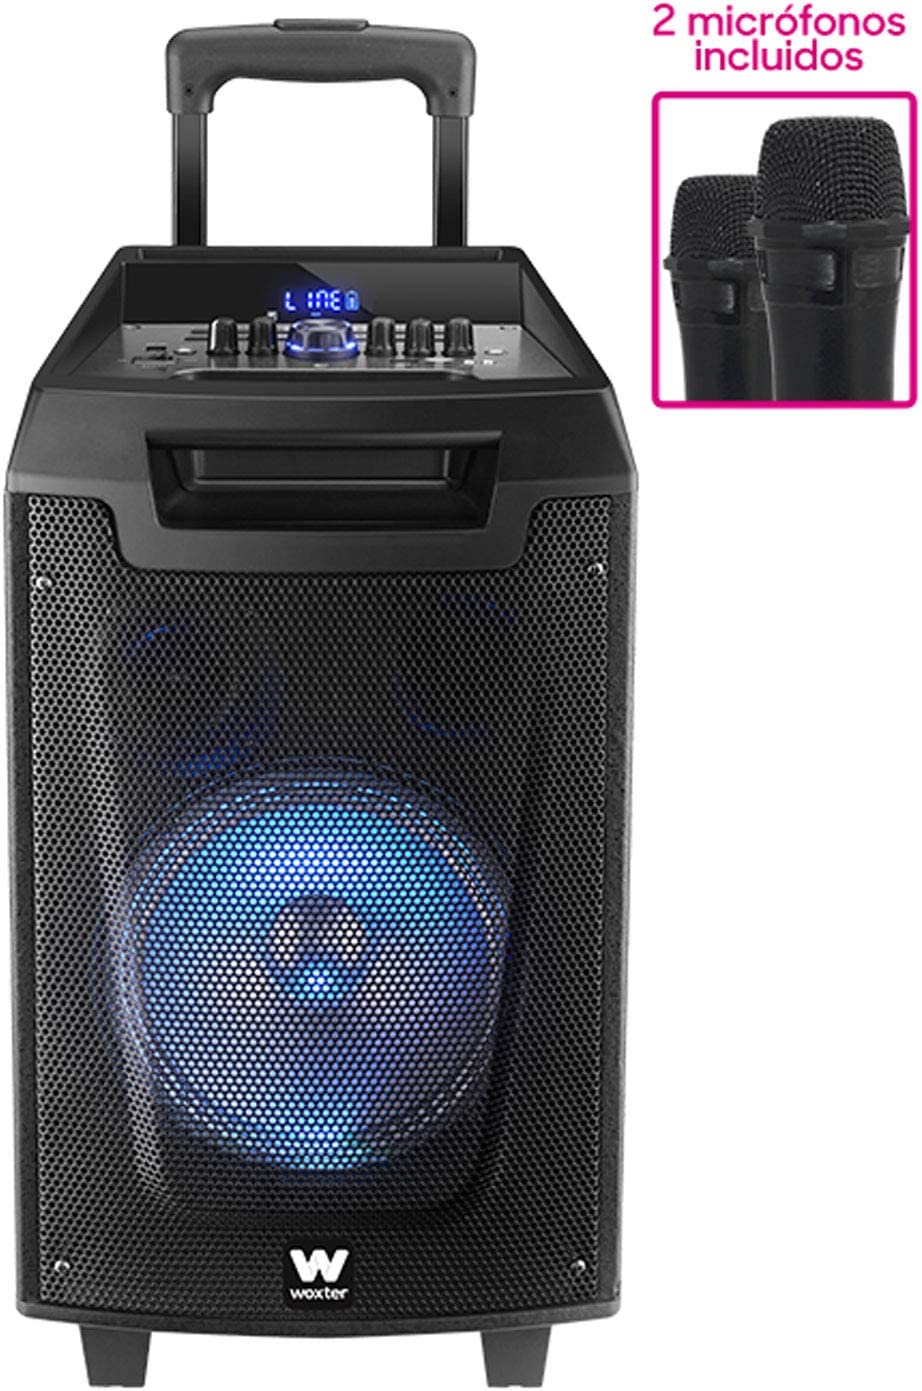 Woxter Rock'n'Roller - Altavoz trolley con función karaoke, Potencia de 80W, Display Led, Bluetooth, Lector SD/USB, AUX, Prioridad Mic, Mando a distancia, Batería de alta capacidad y 2 micrófonos inal